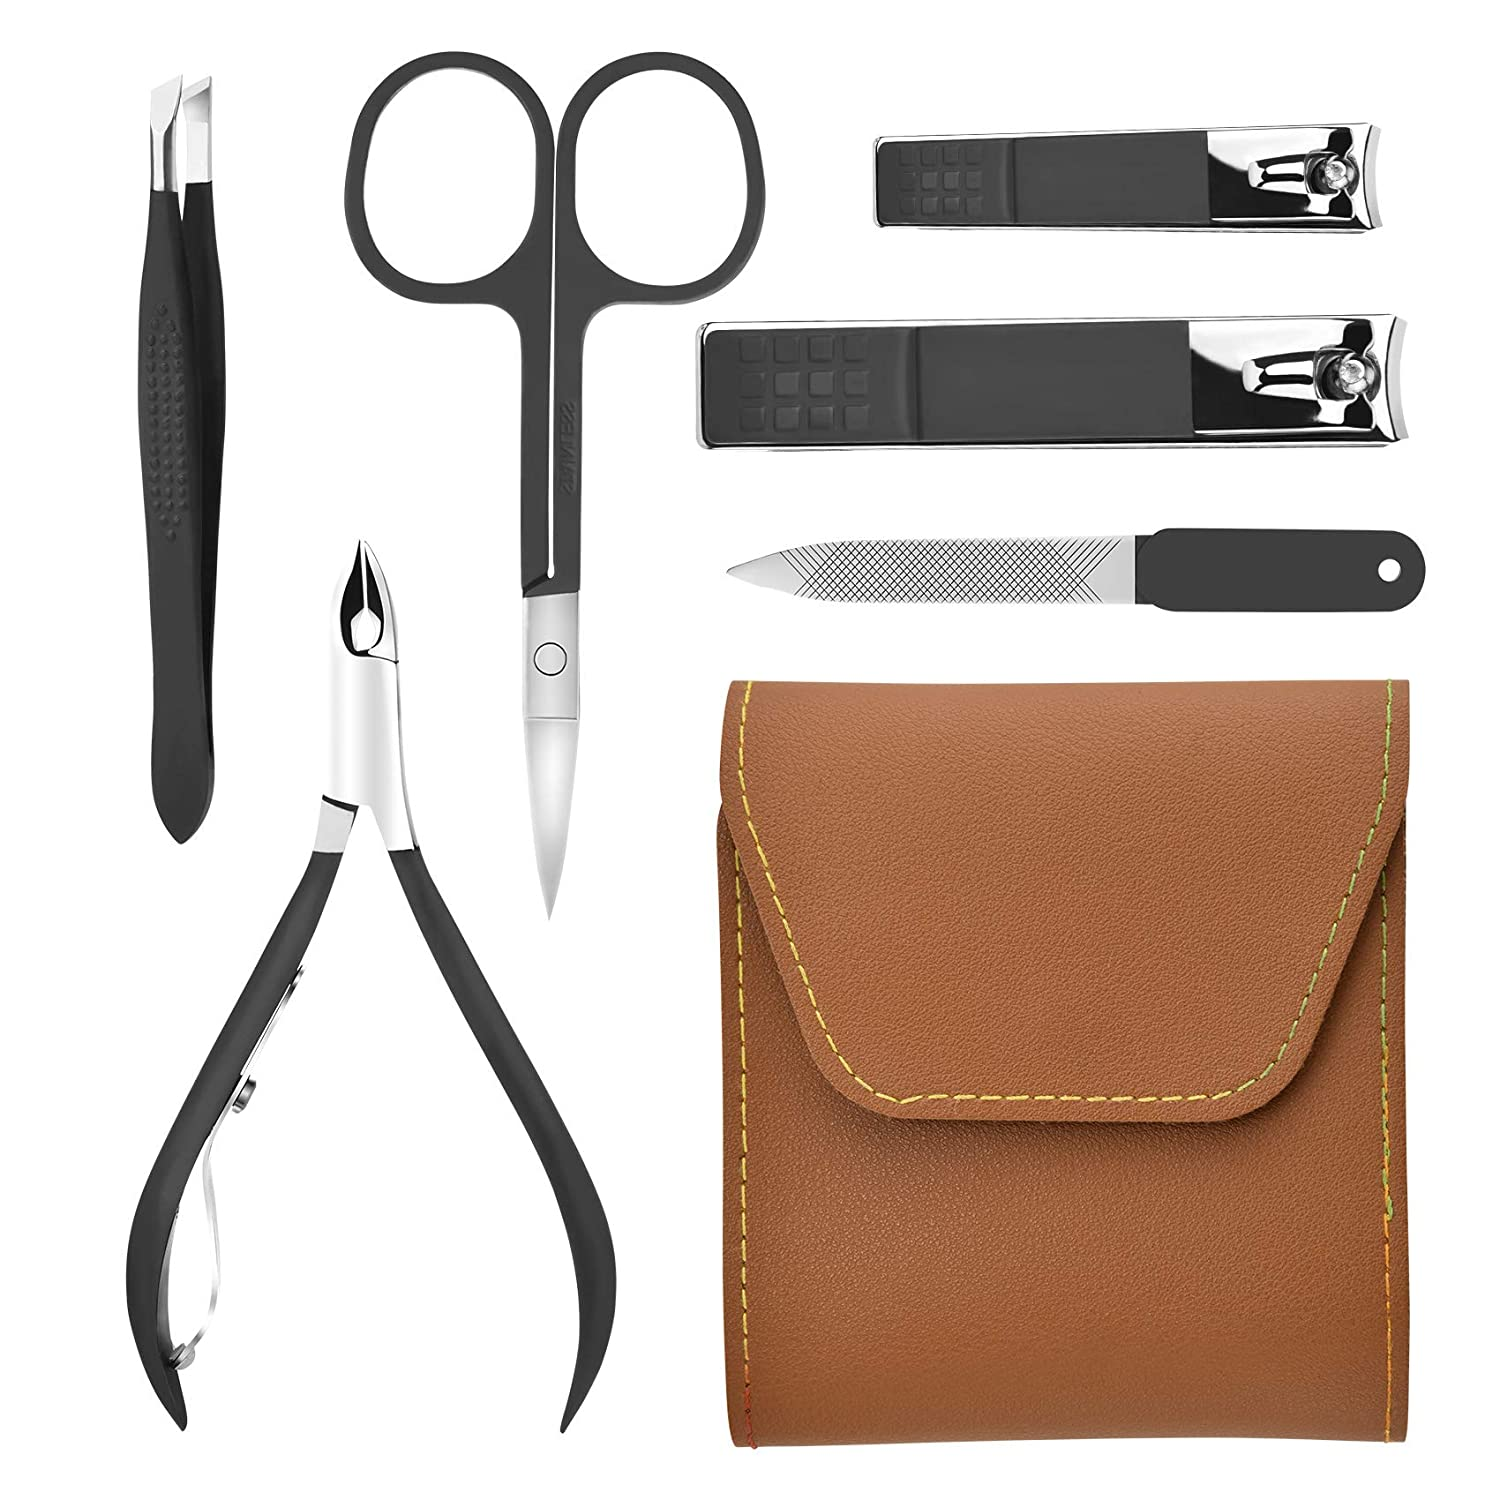 Manicure Set Nail Clippers Pedicure Kit, 6 Pieces Stainless Steel Manicure Kit, Professional Grooming Kits for Women/Men, Personal Nail Care Tools with Leather Case, Very Suitable As a Gift (Brown)